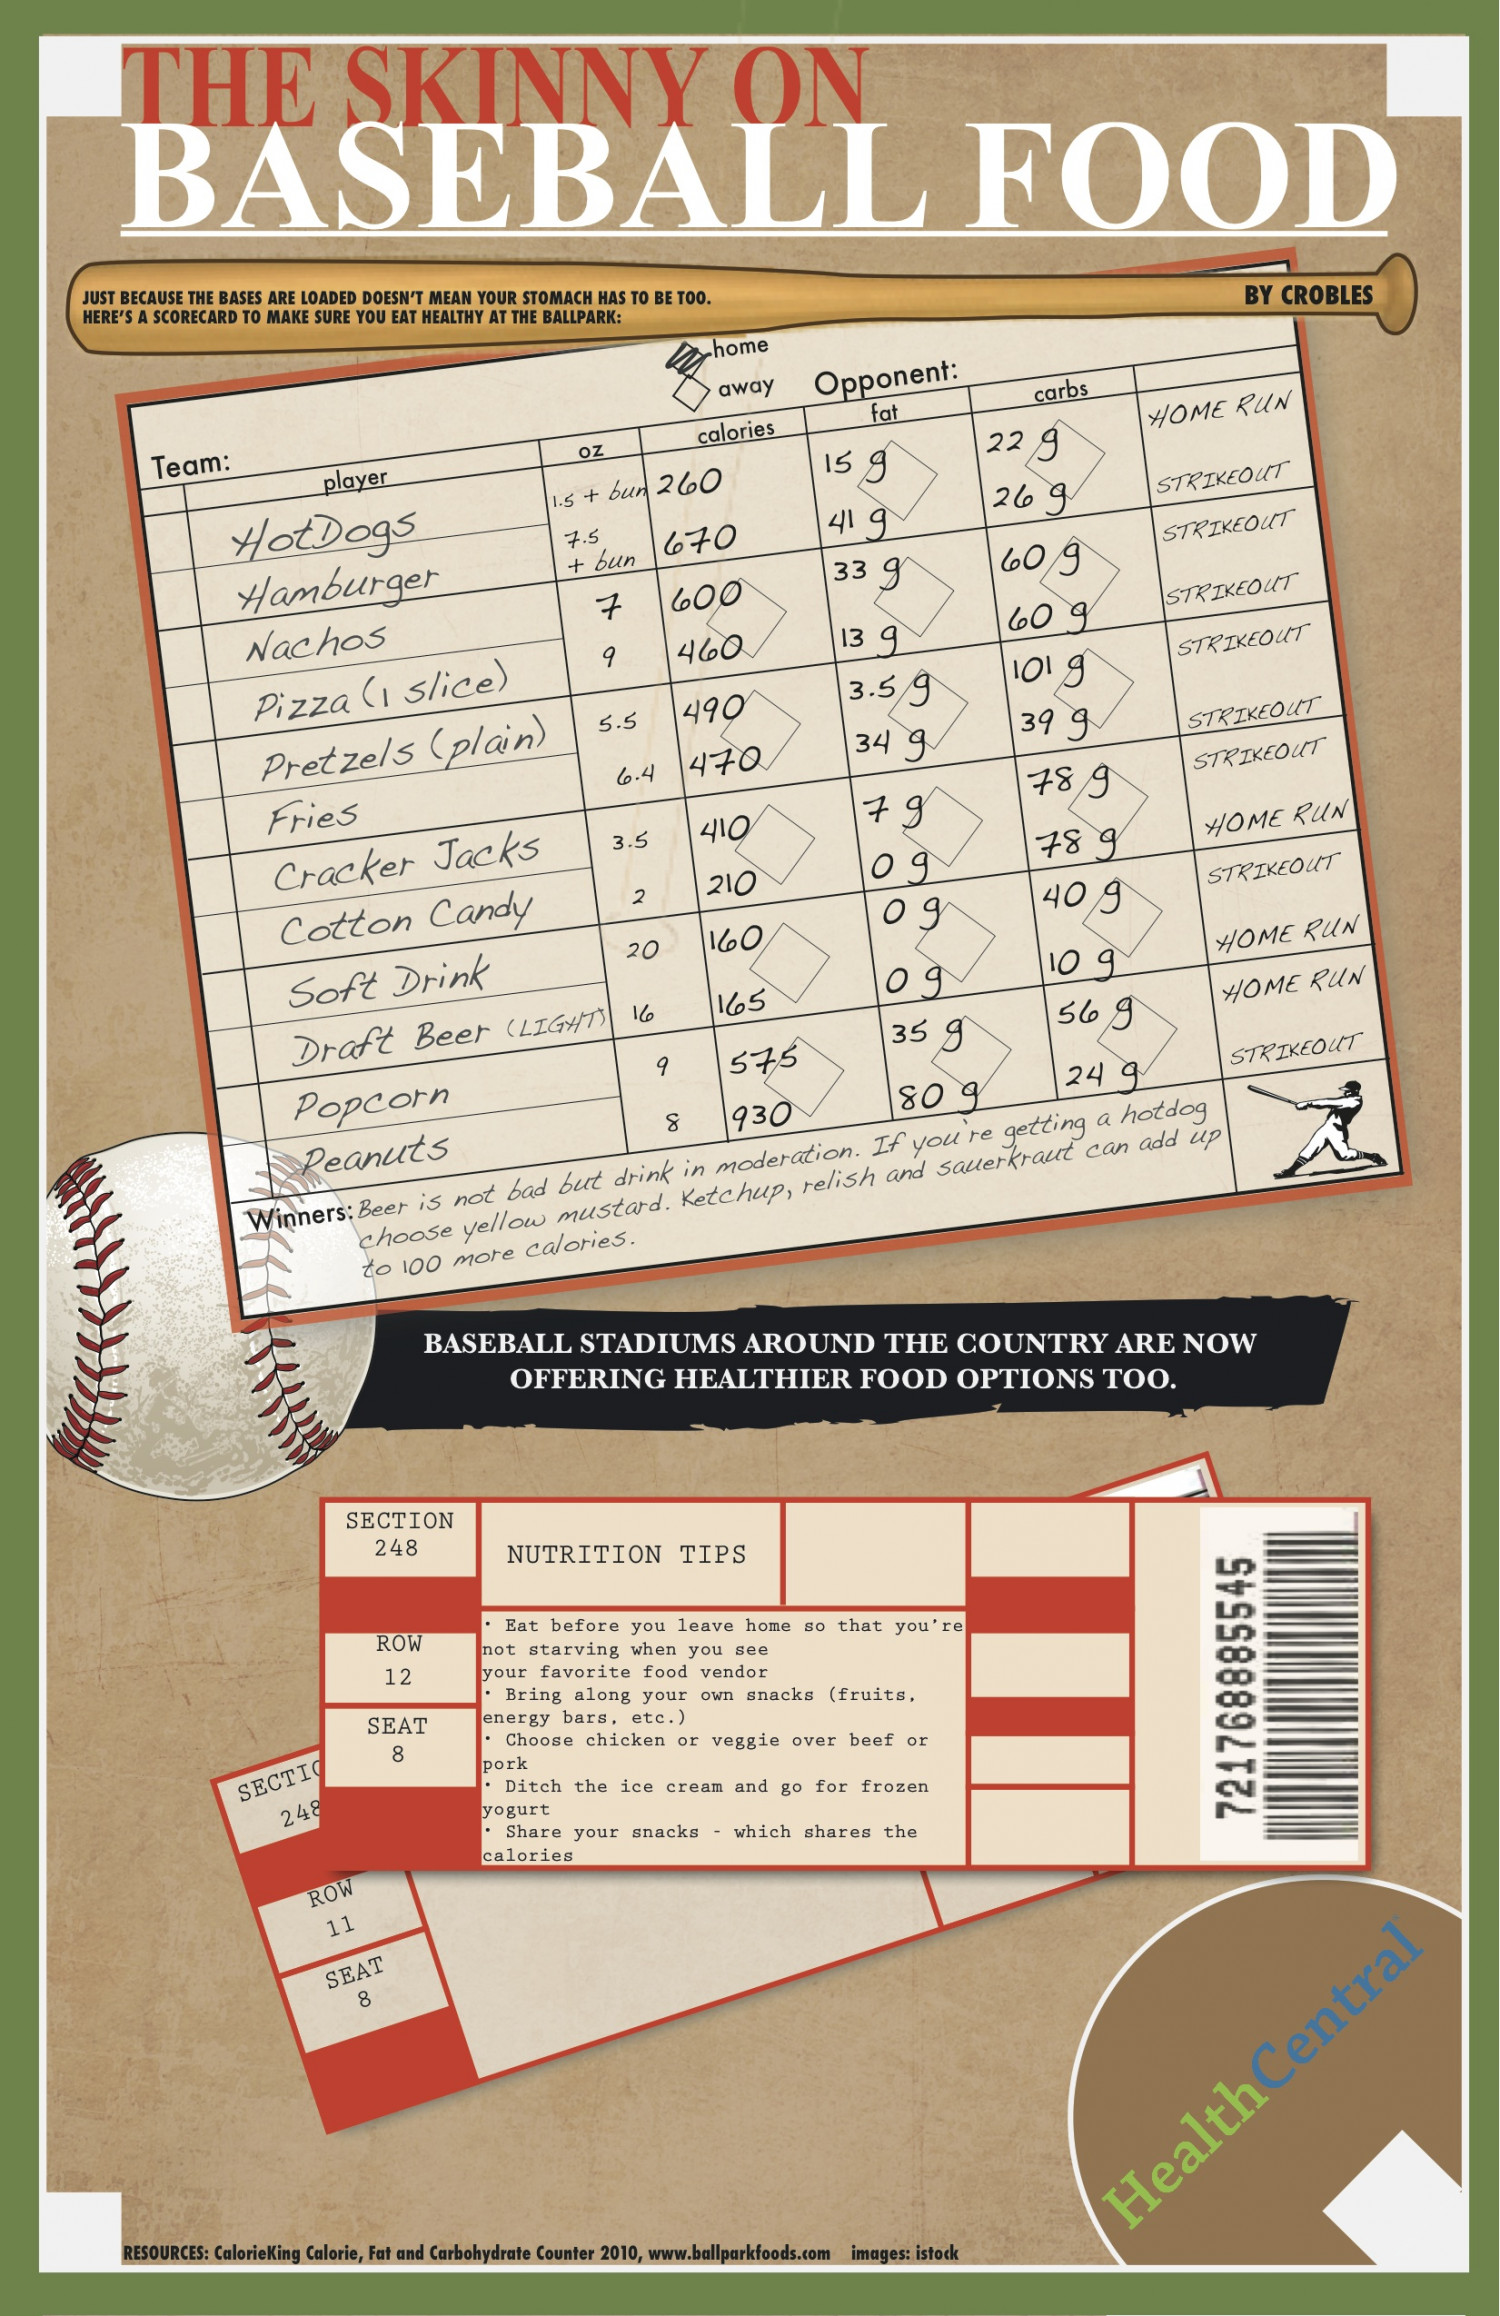 The Skinny on Baseball Food  Infographic